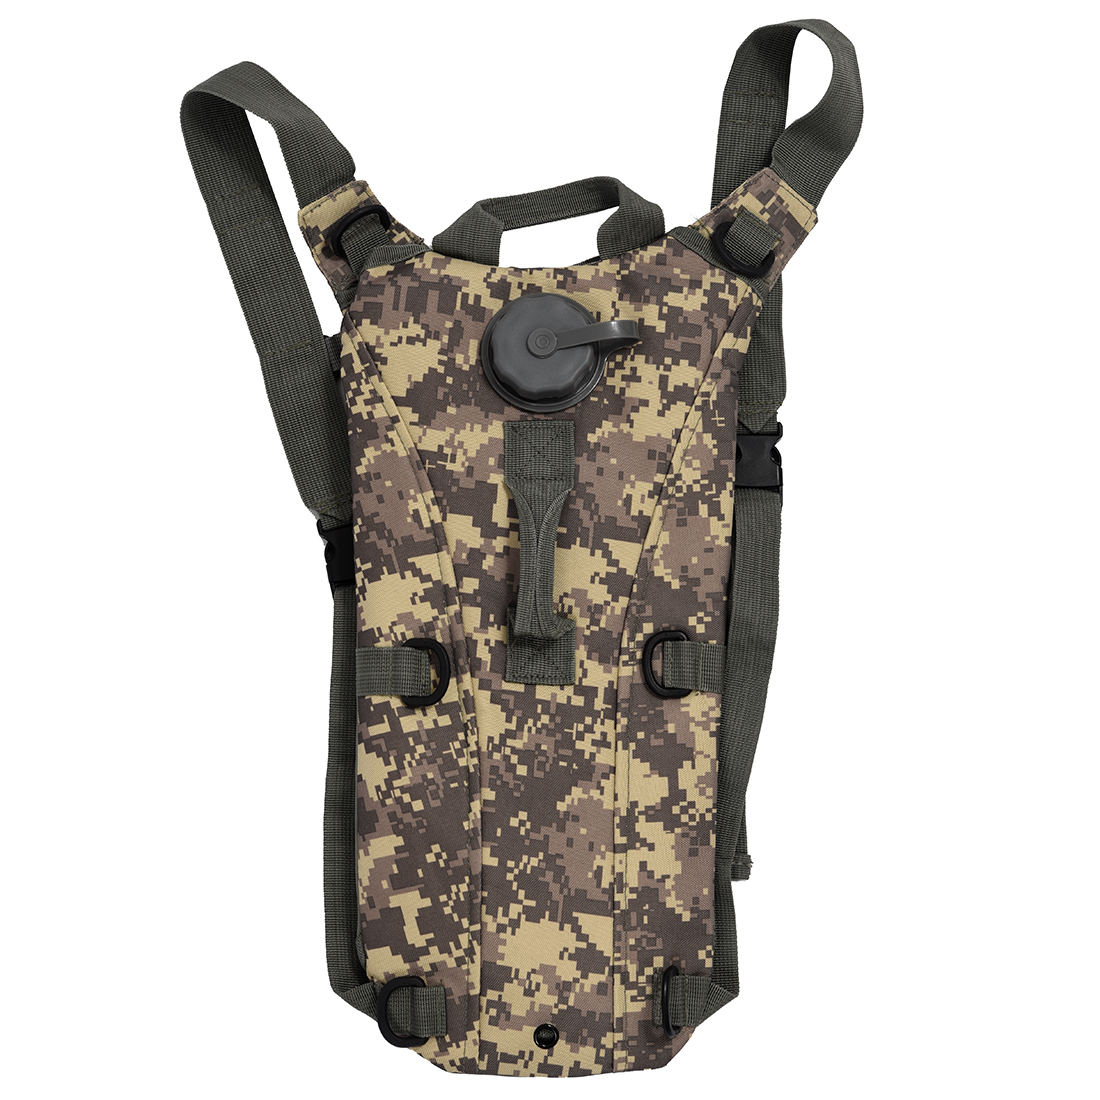 2.5L Hydration Packs Tactical Bike Bicycle Camel Water Bladder bag Assault Backpack Camping Hiking Pouch Water Bag